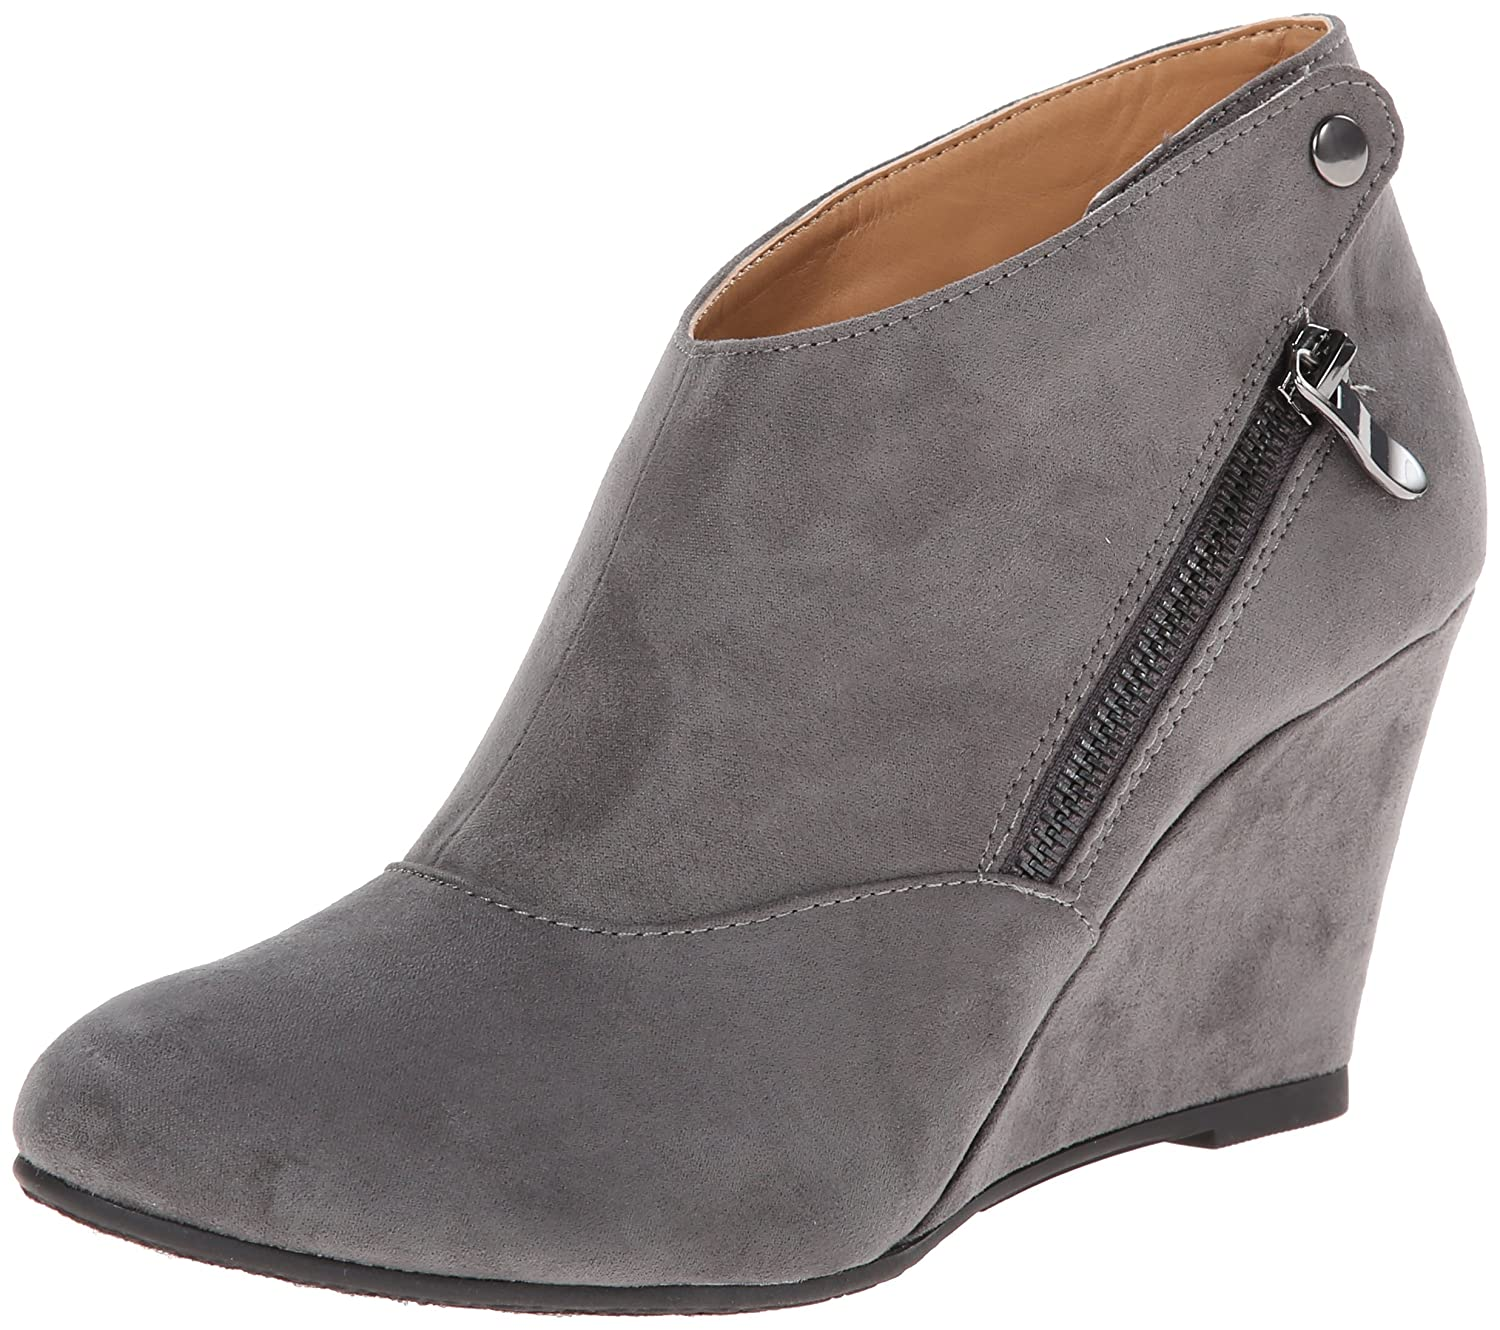 CL by Chinese Laundry Women s Valerie Wedge Bootie a972a816ab